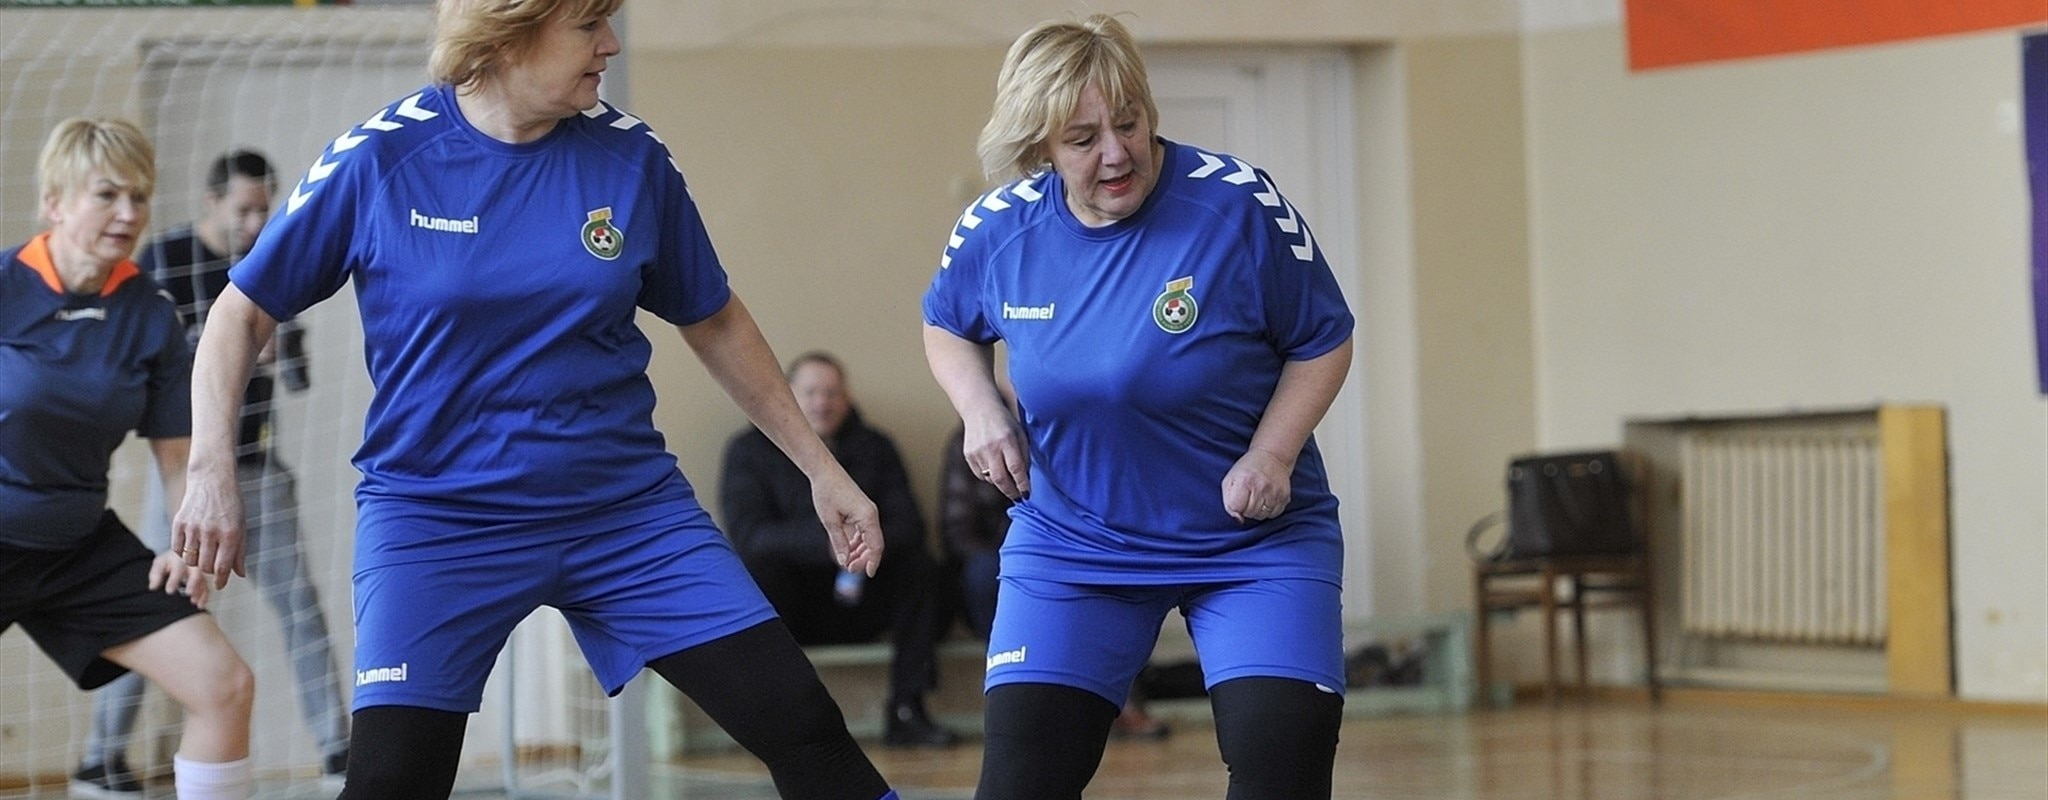 Meet the footballing grannies from Lithuania